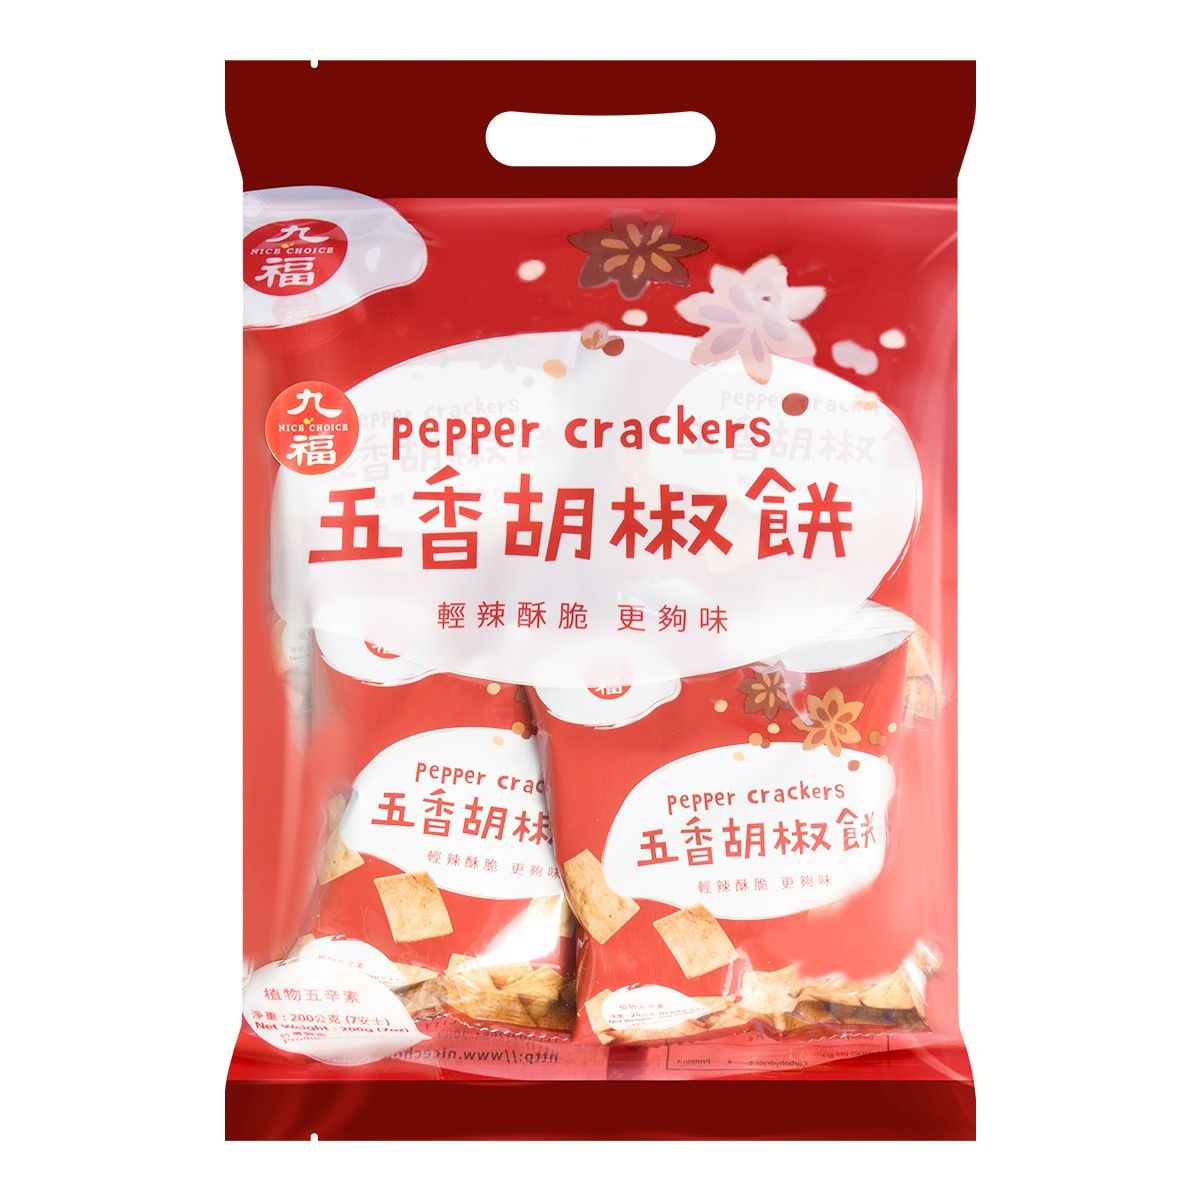 NICE CHOICE Five Spices Pepper Crackers 200g